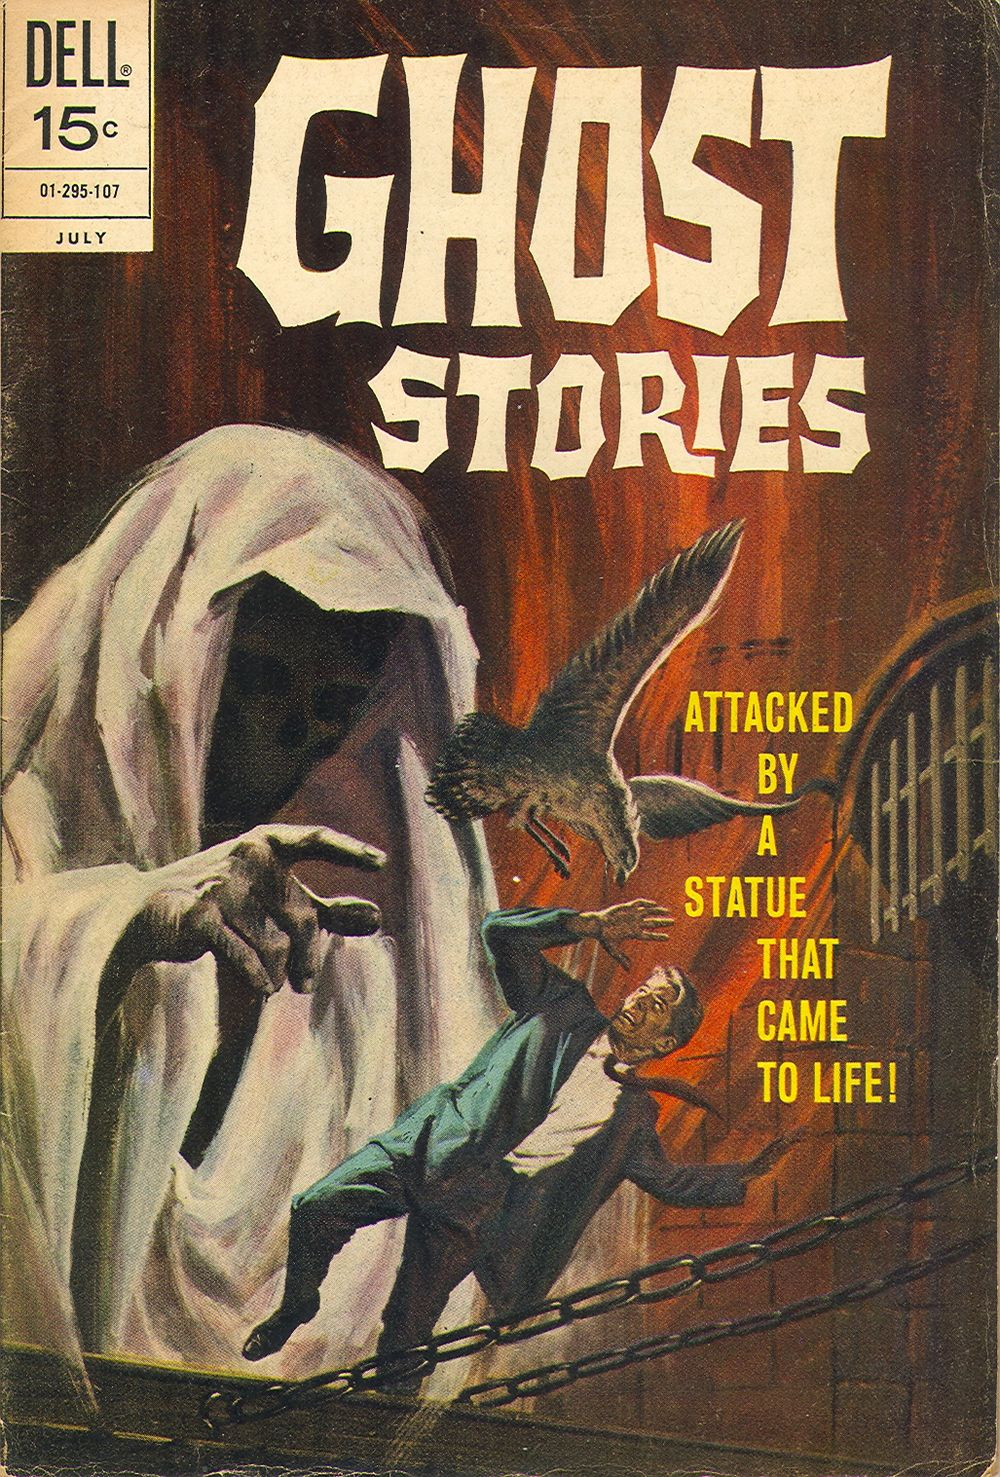 Ghost Stories [Dell] V1 0029.jpg